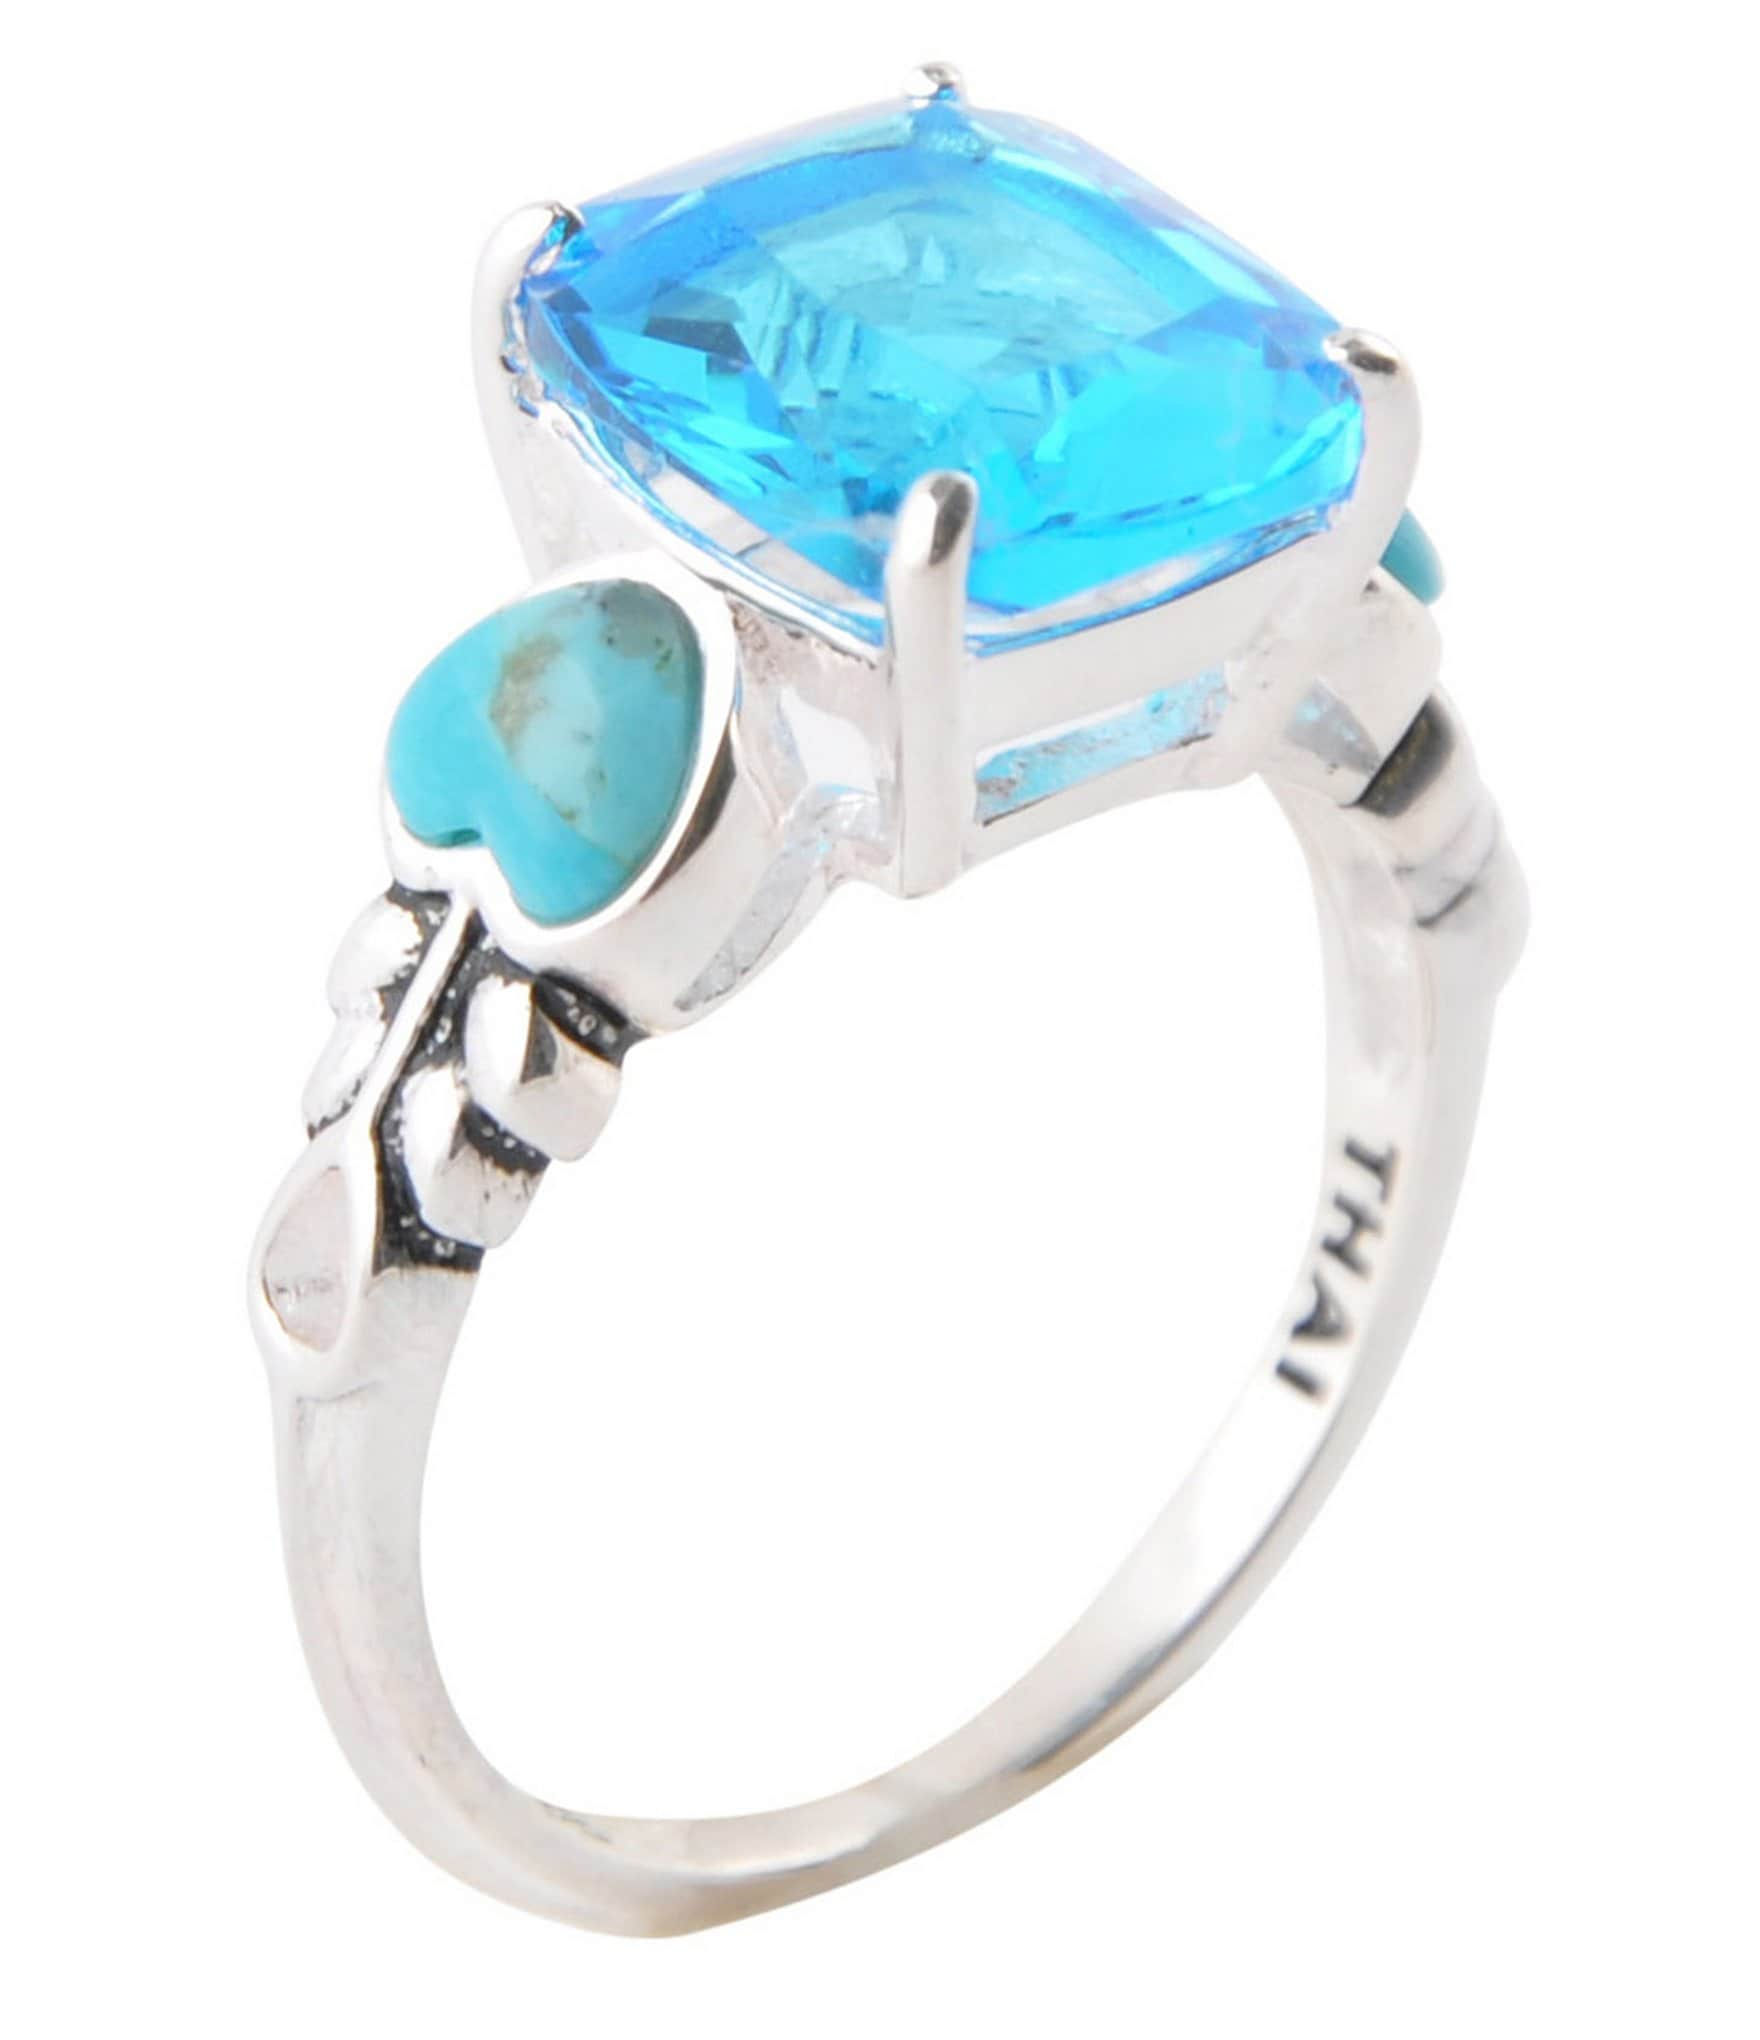 turquoise women vintage ring silver men style four from with geometric com adjustable dhgate stone fashion antique jewelry new product rings s for